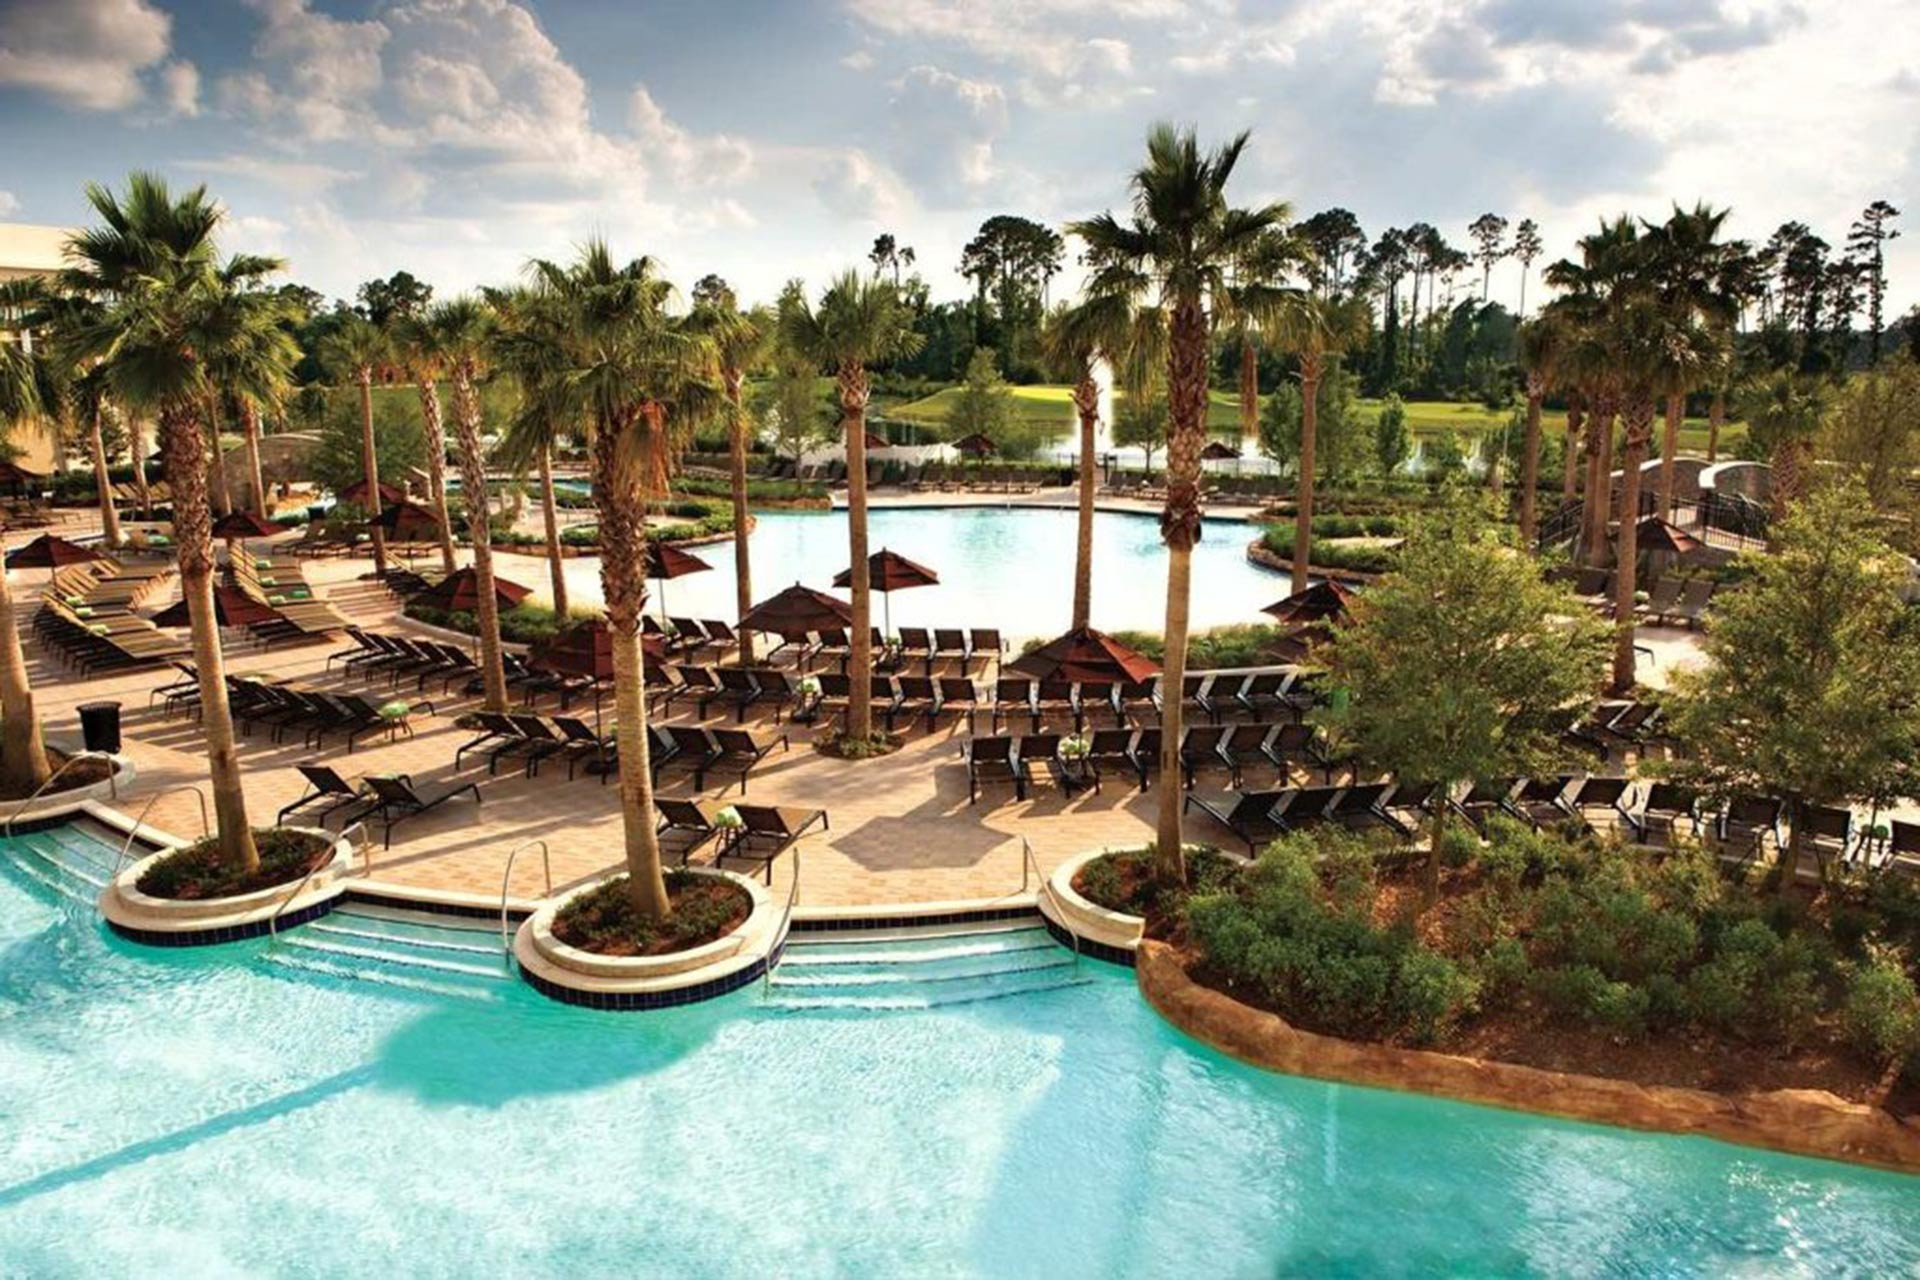 Pools at Hilton Orlando Bonnet Creek in Florida; Courtesy of Hilton Orlando Bonnet Creek